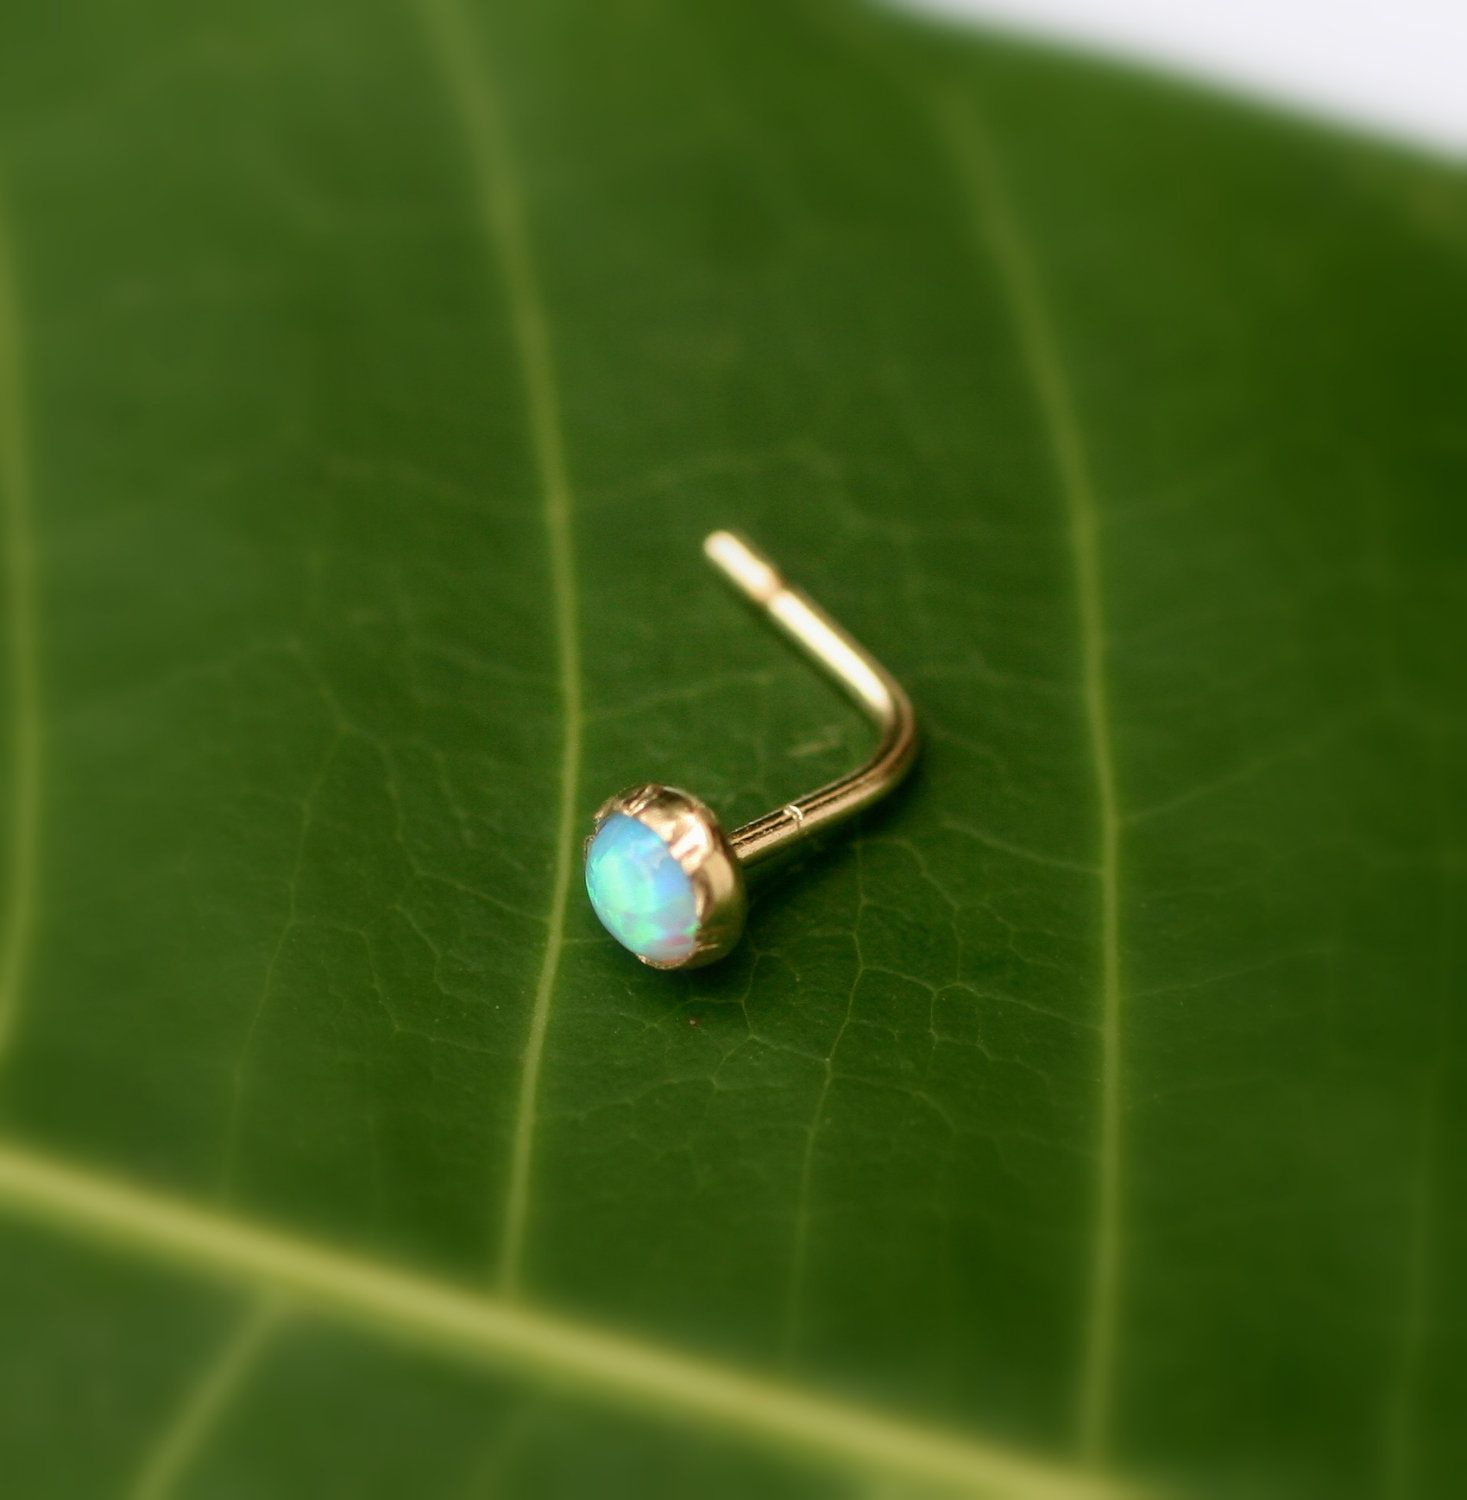 Nose Ring 14K Yellow Gold Filled 3mm Blue Opal Nose Ring Piercing Nose Stud